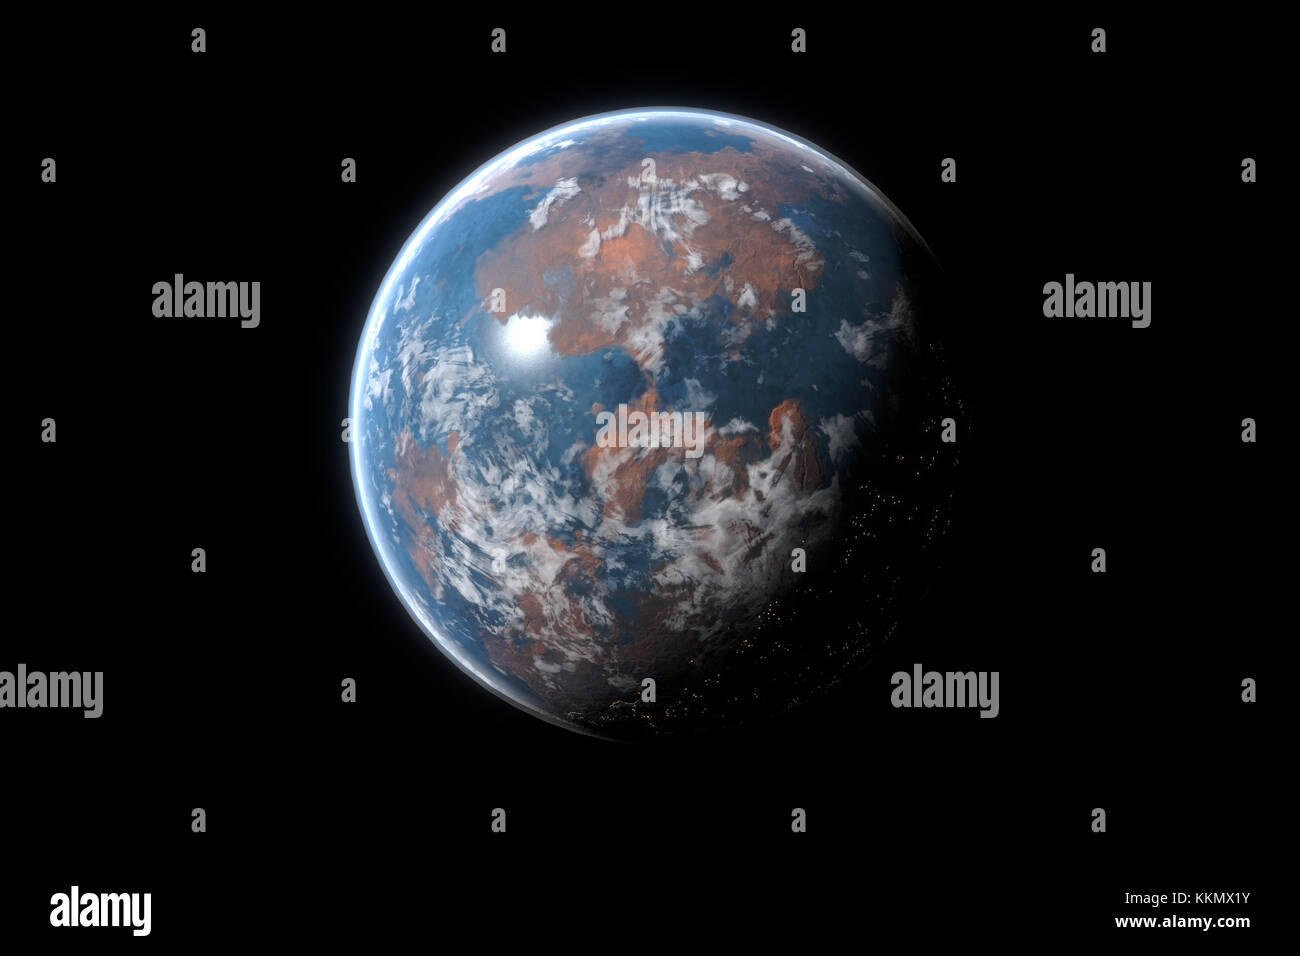 This image represent a generic desert planet or exoplanet with atmosphere and life. It is a realistic 3d rendering - Stock Image